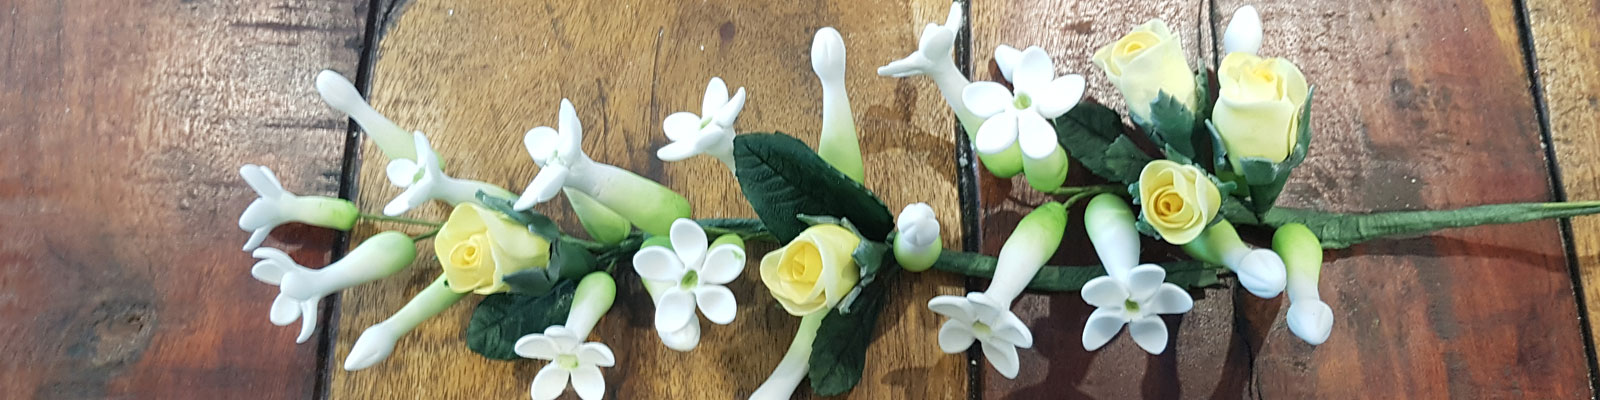 sugar floristry by Sweet Green Icing